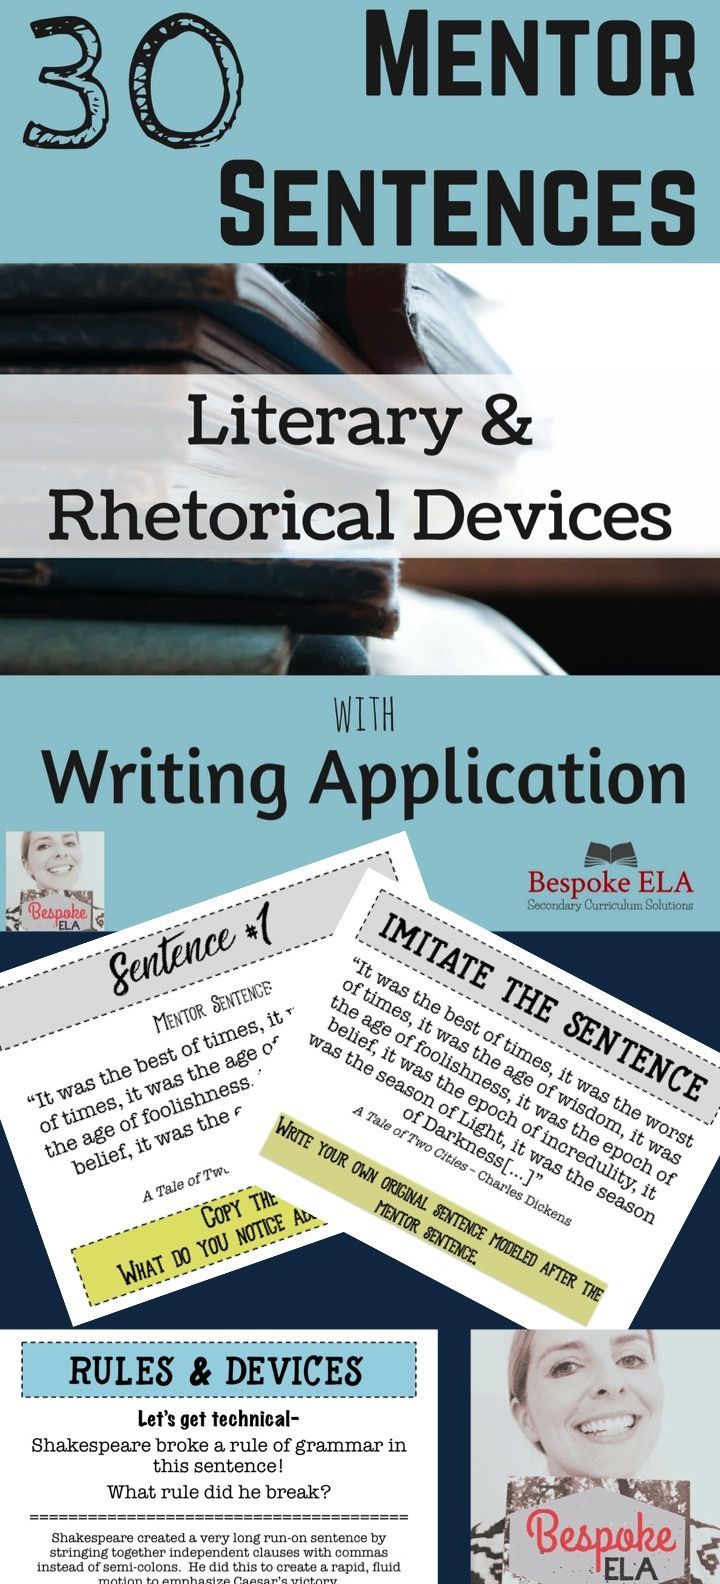 30 Mentor Sentences For Literary Rhetorical Devices With Writing